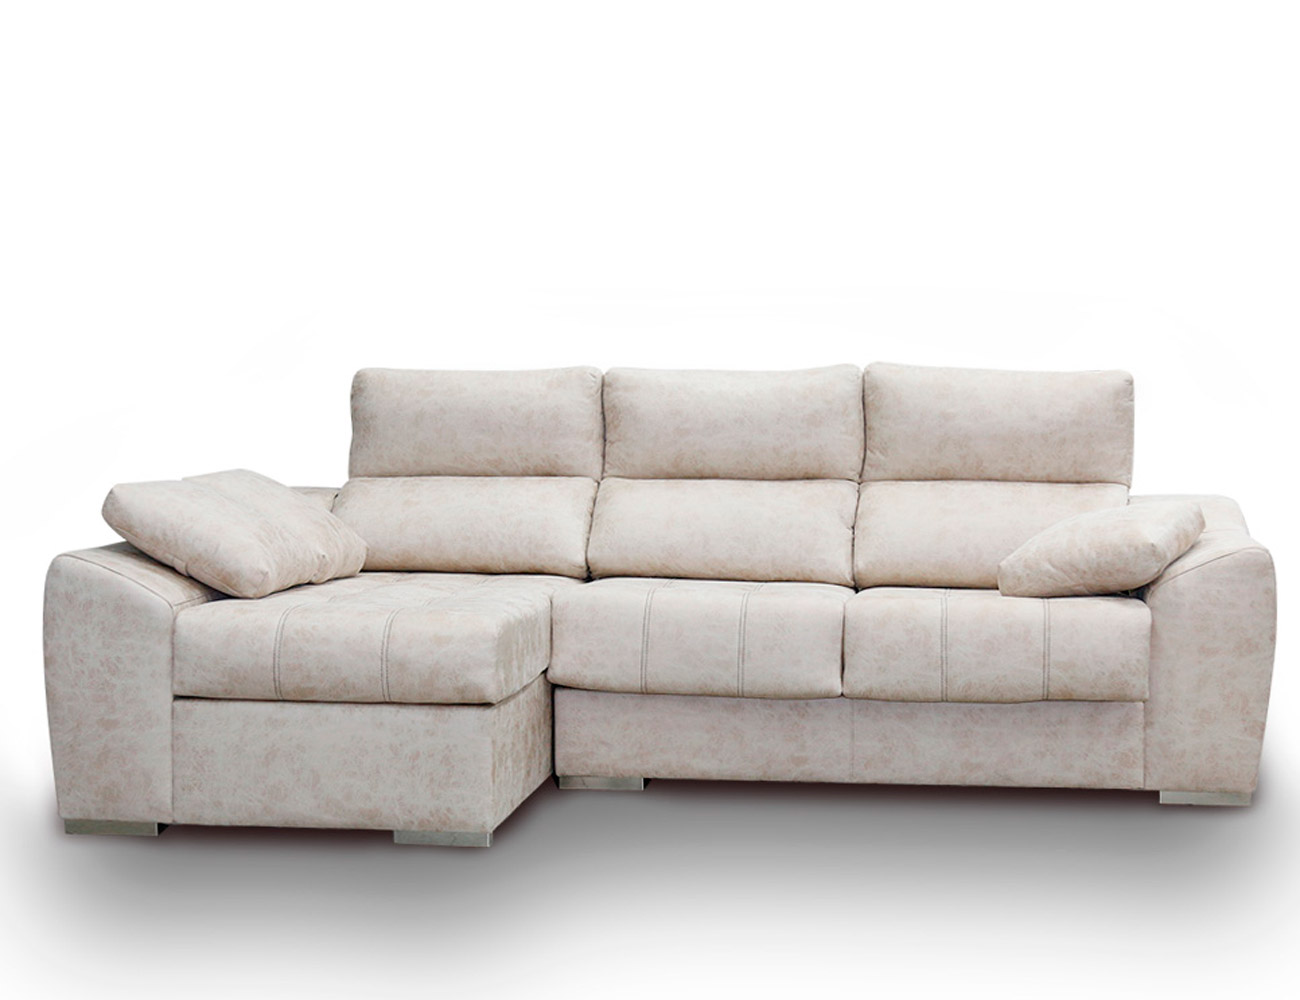 Sofa chaiselongue anti manchas beig blanco6